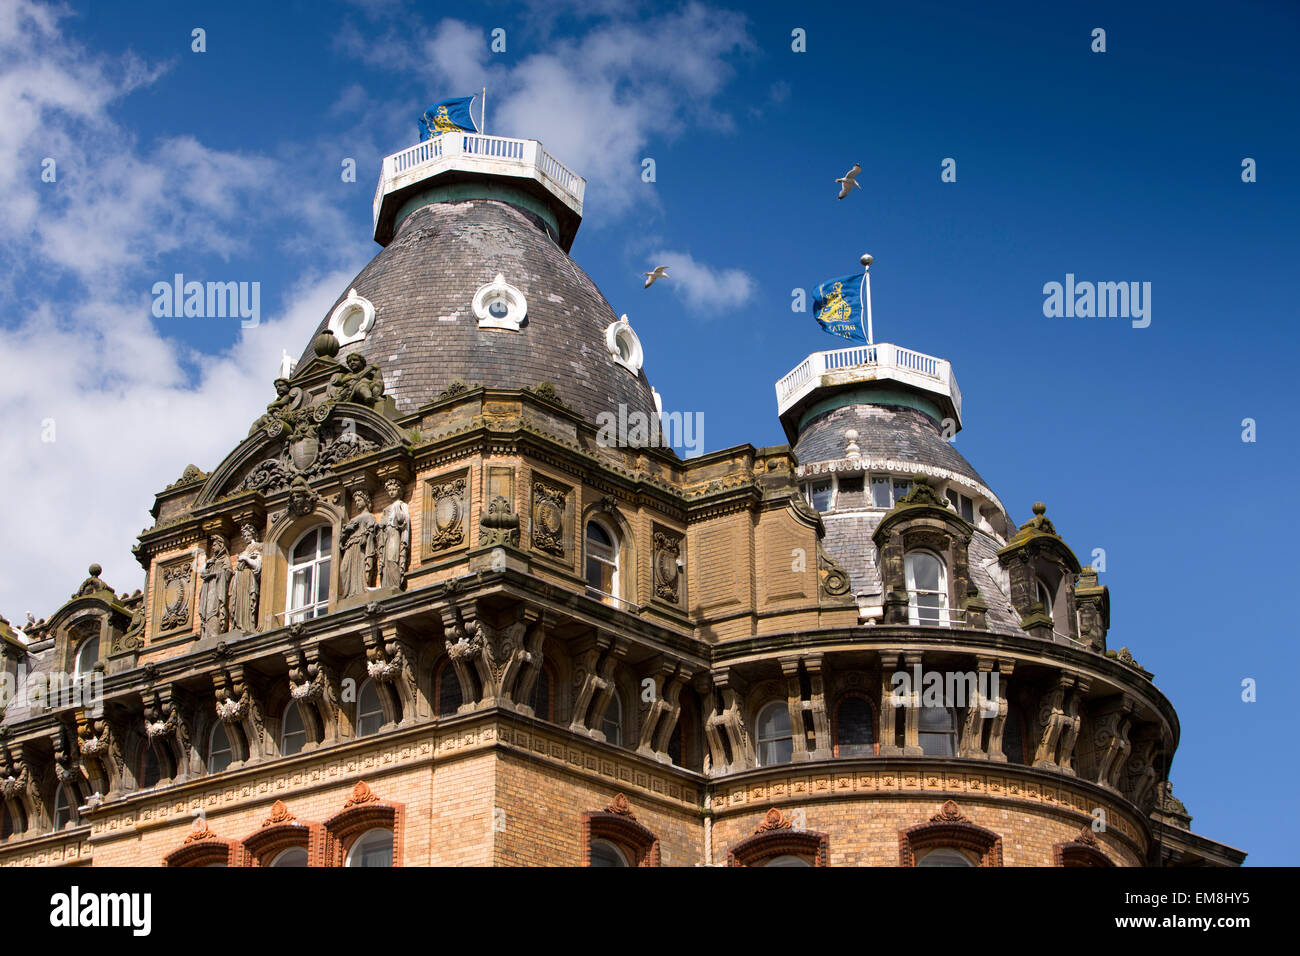 UK, England, Yorkshire, Scarborough, St Nicholas Cliff, Grand Hotel, roofline decorated with statues - Stock Image